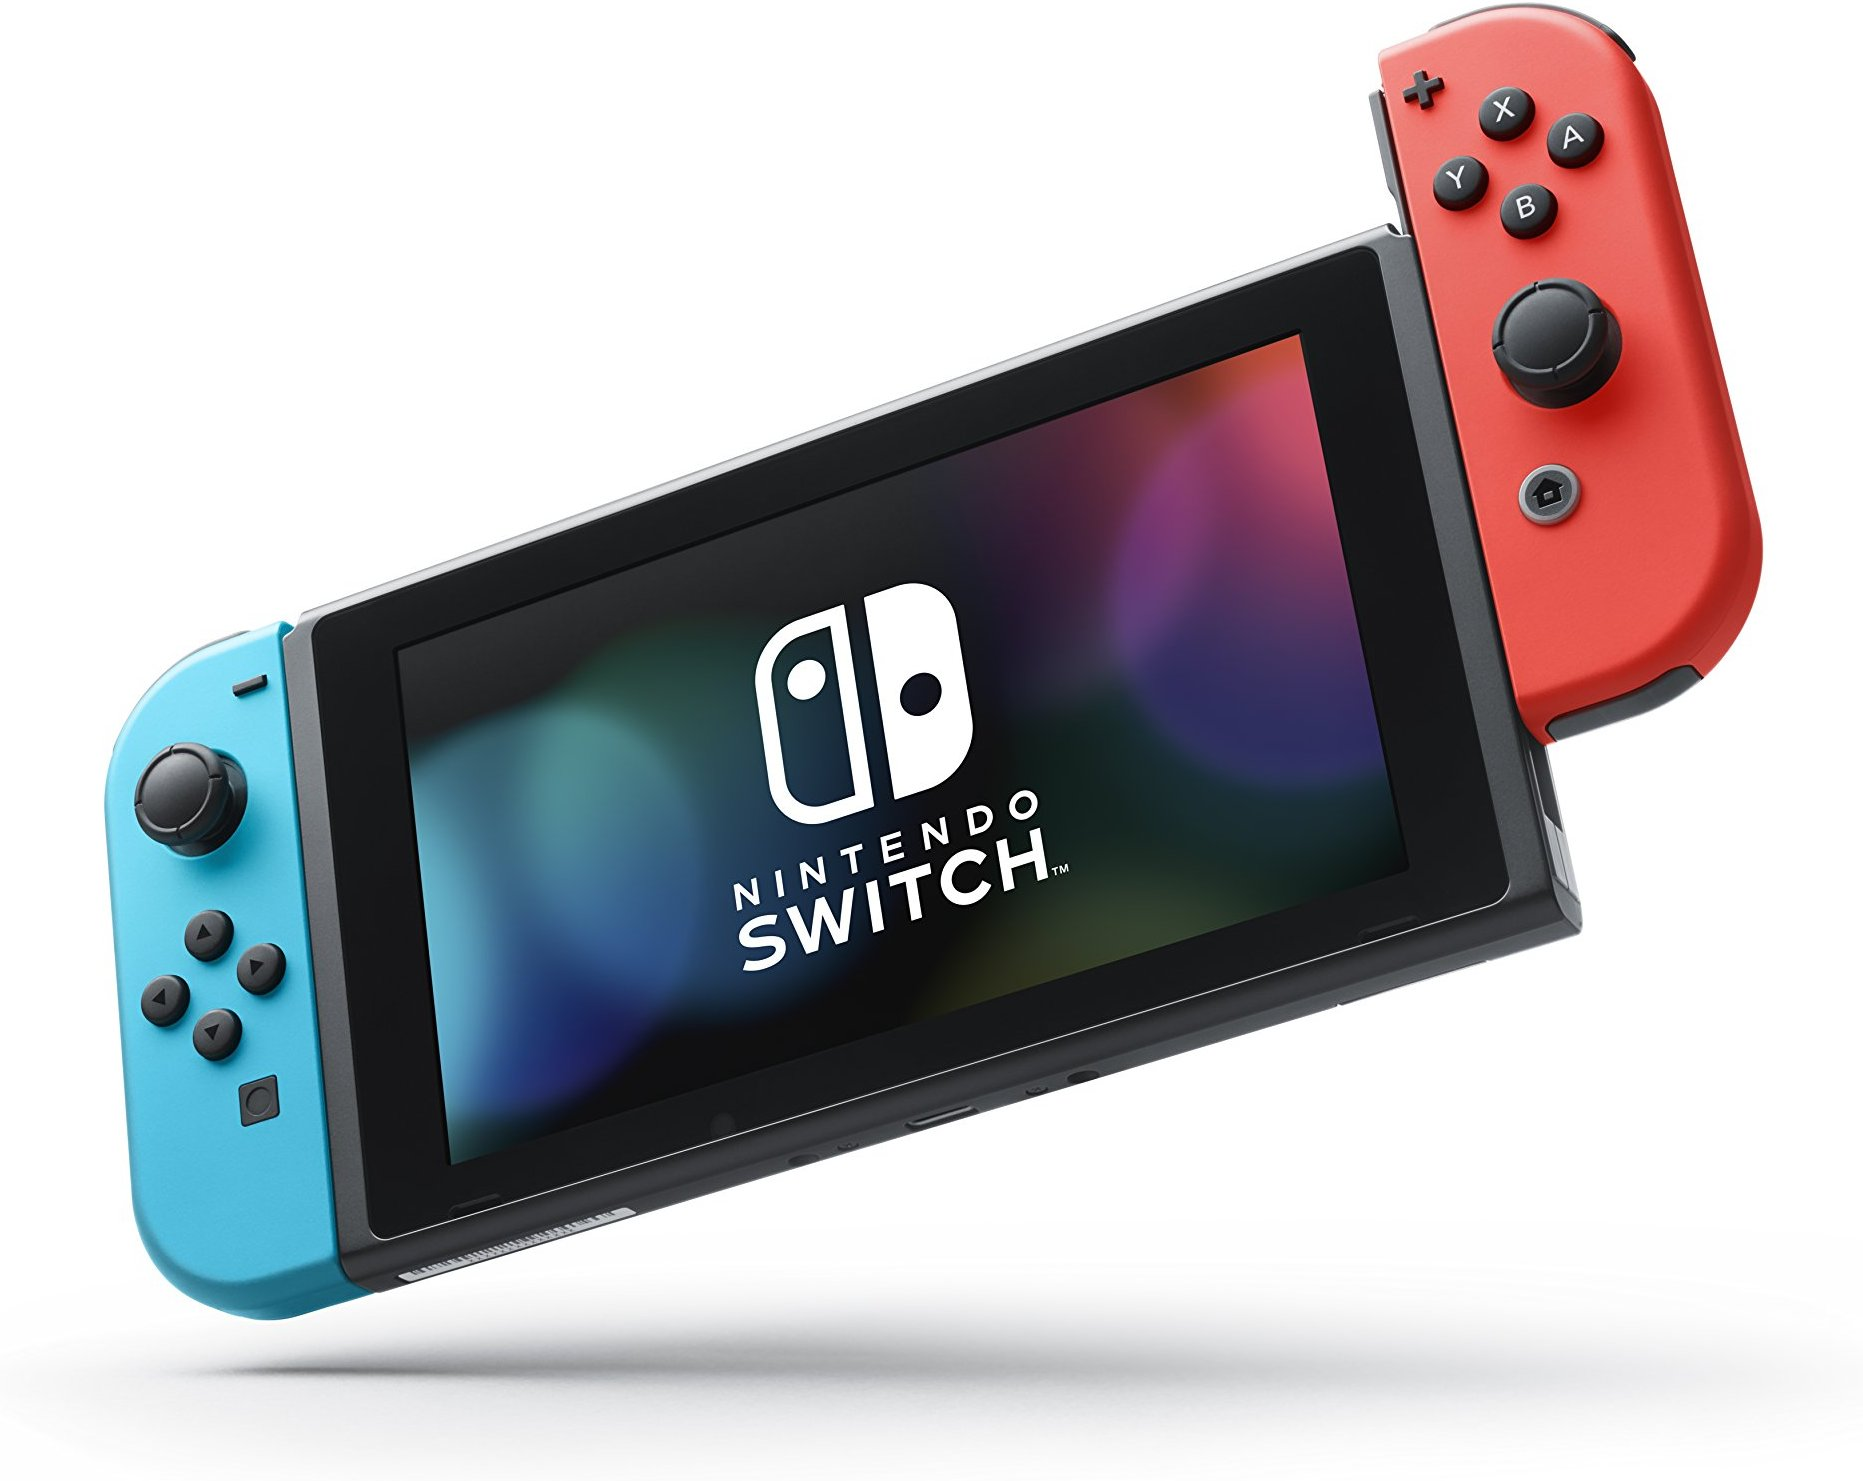 Nintendo Switch product image